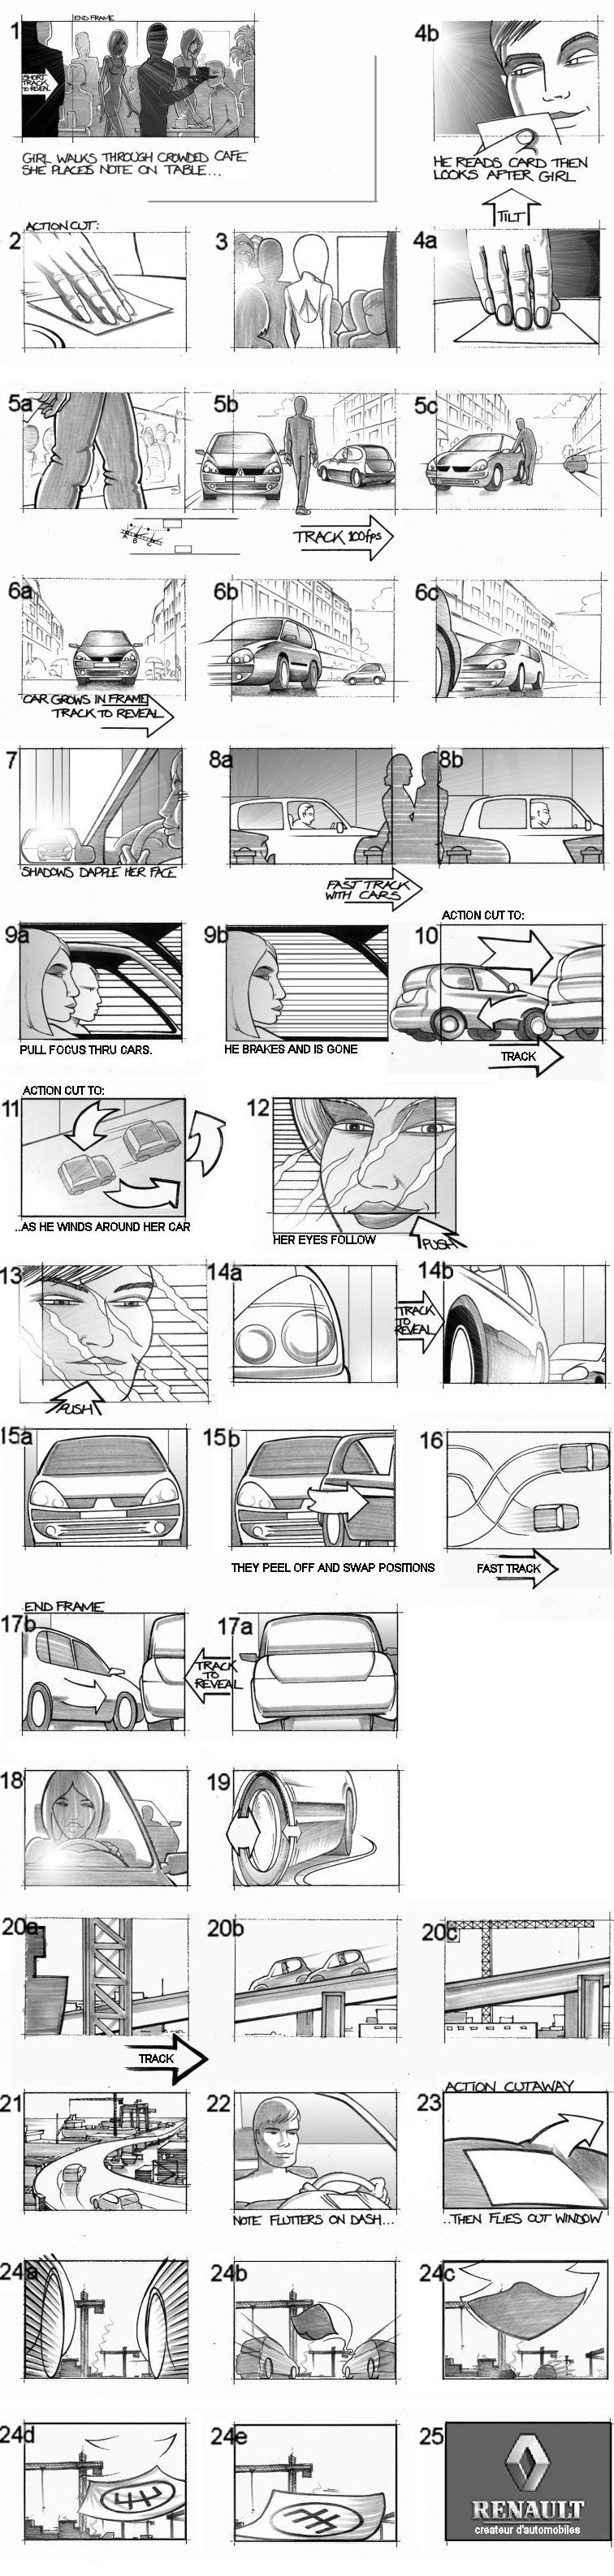 RENAULT CLIO STORYBOARDS BY ANDY SPARROW